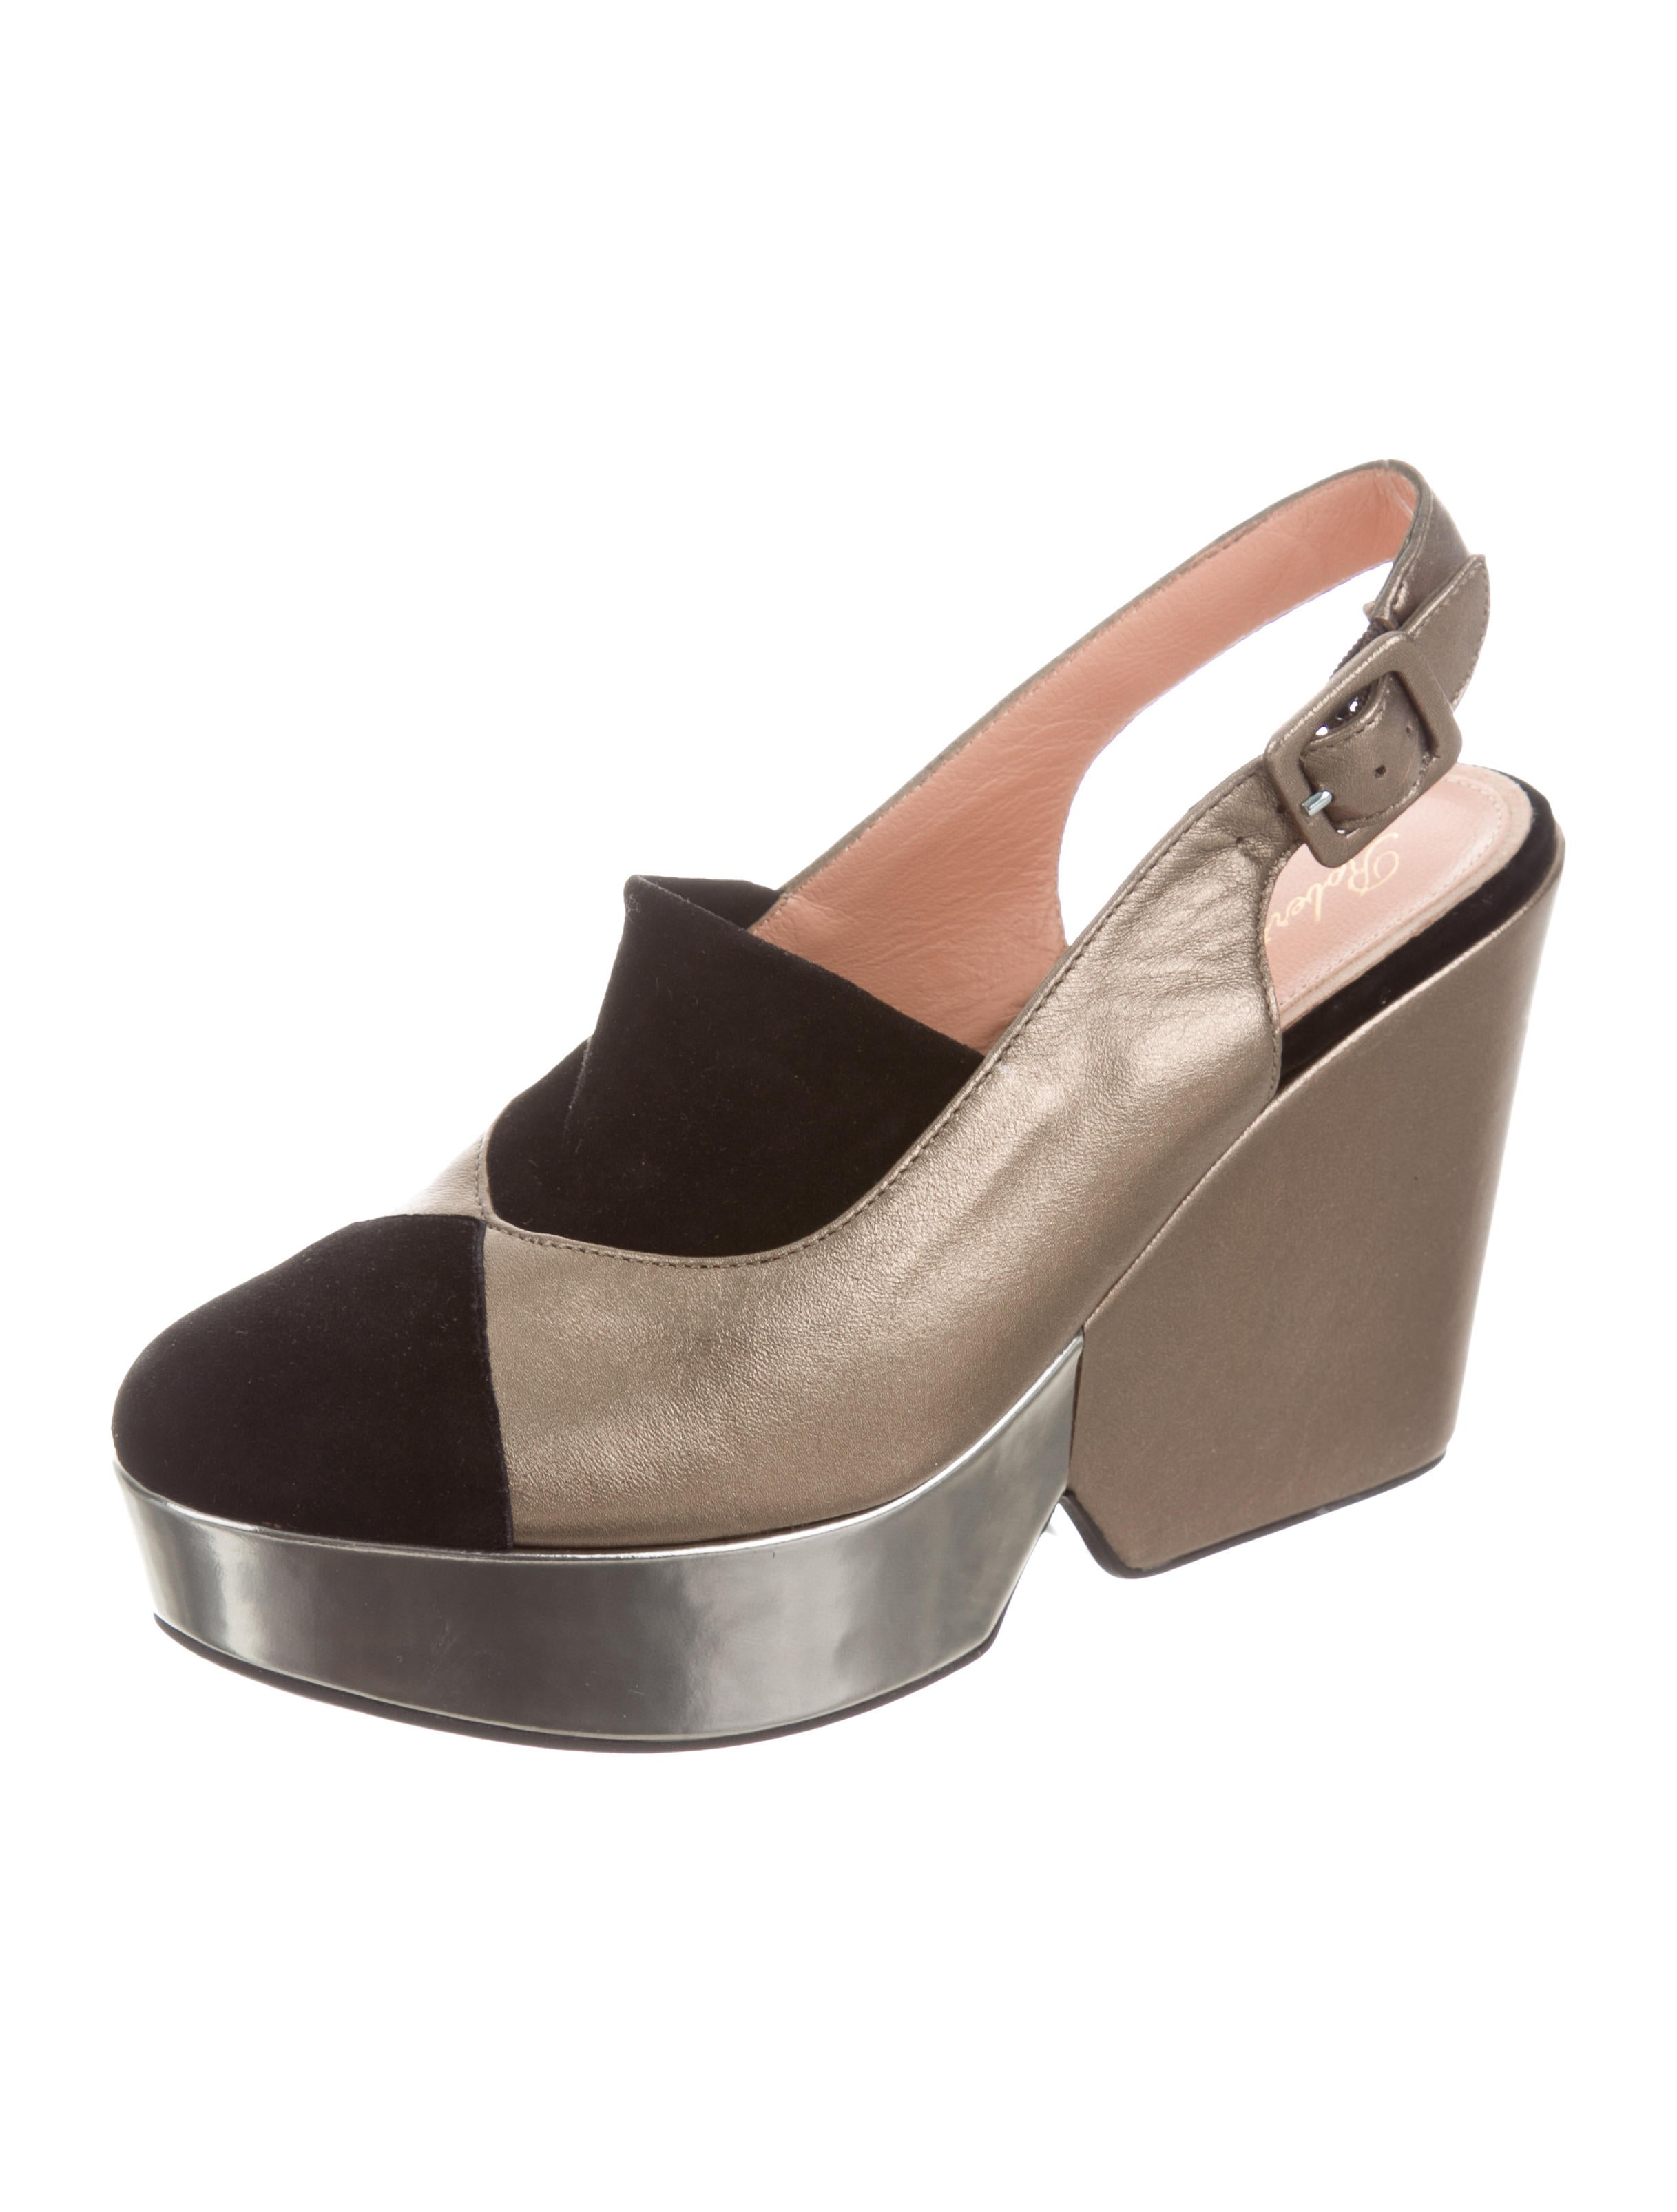 robert clergerie metallic platform wedges shoes